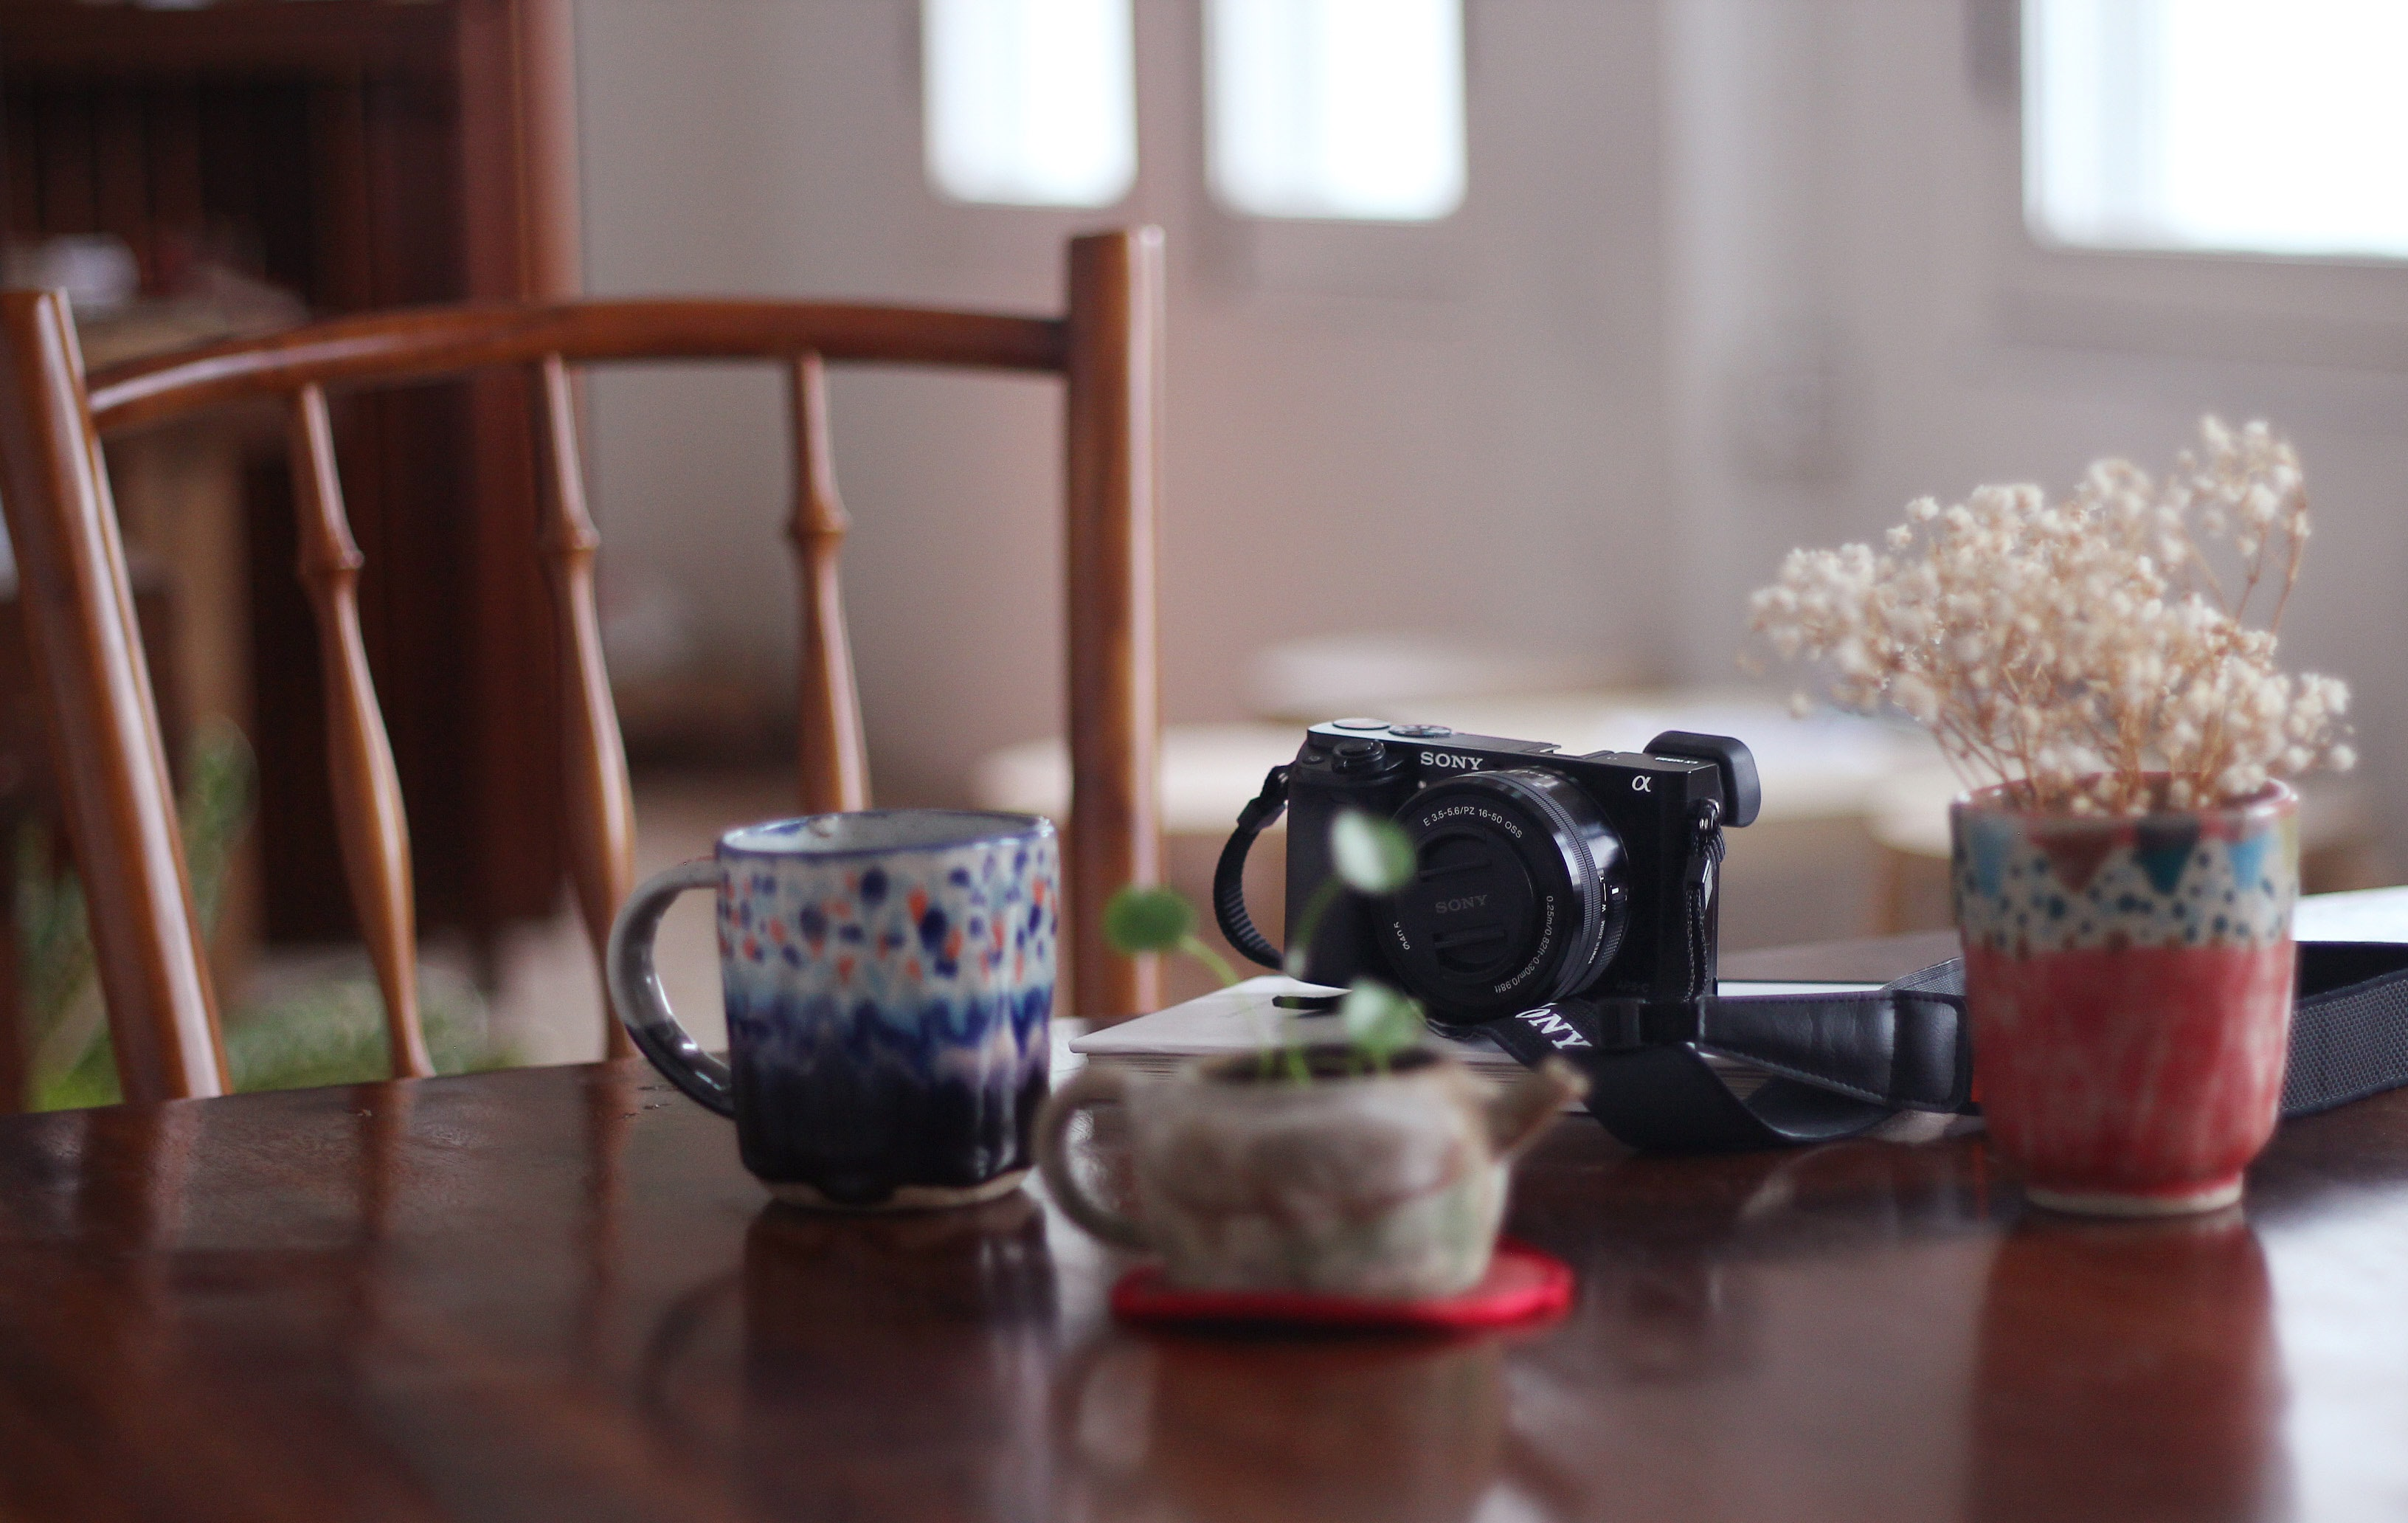 A polka dot mug, Sony camera, and plant on a table a Semasa Cafe And Shop